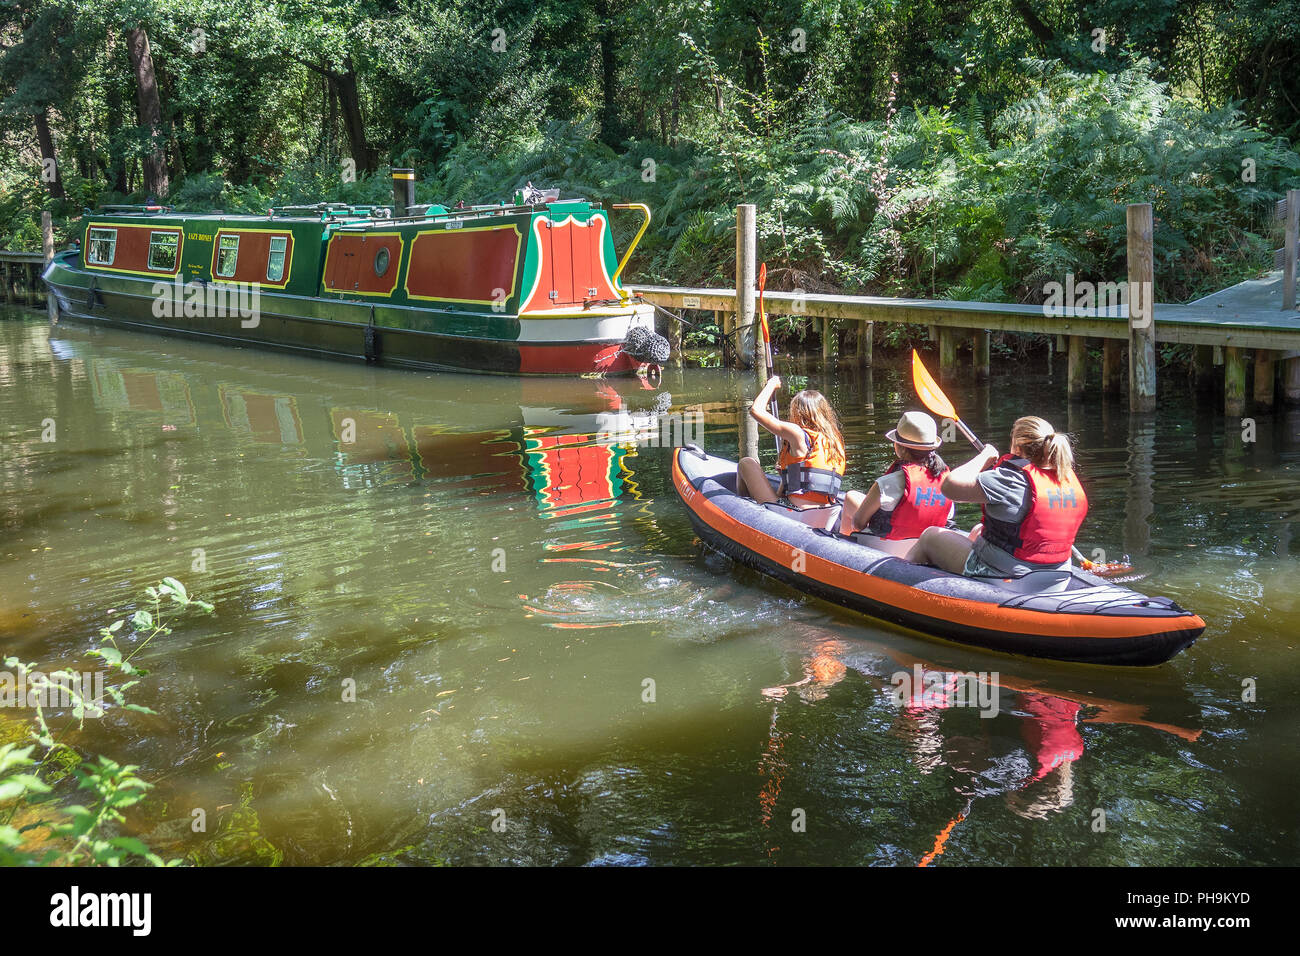 England, Hampshire, Farnborough, Basingstoke canal centre - Stock Image